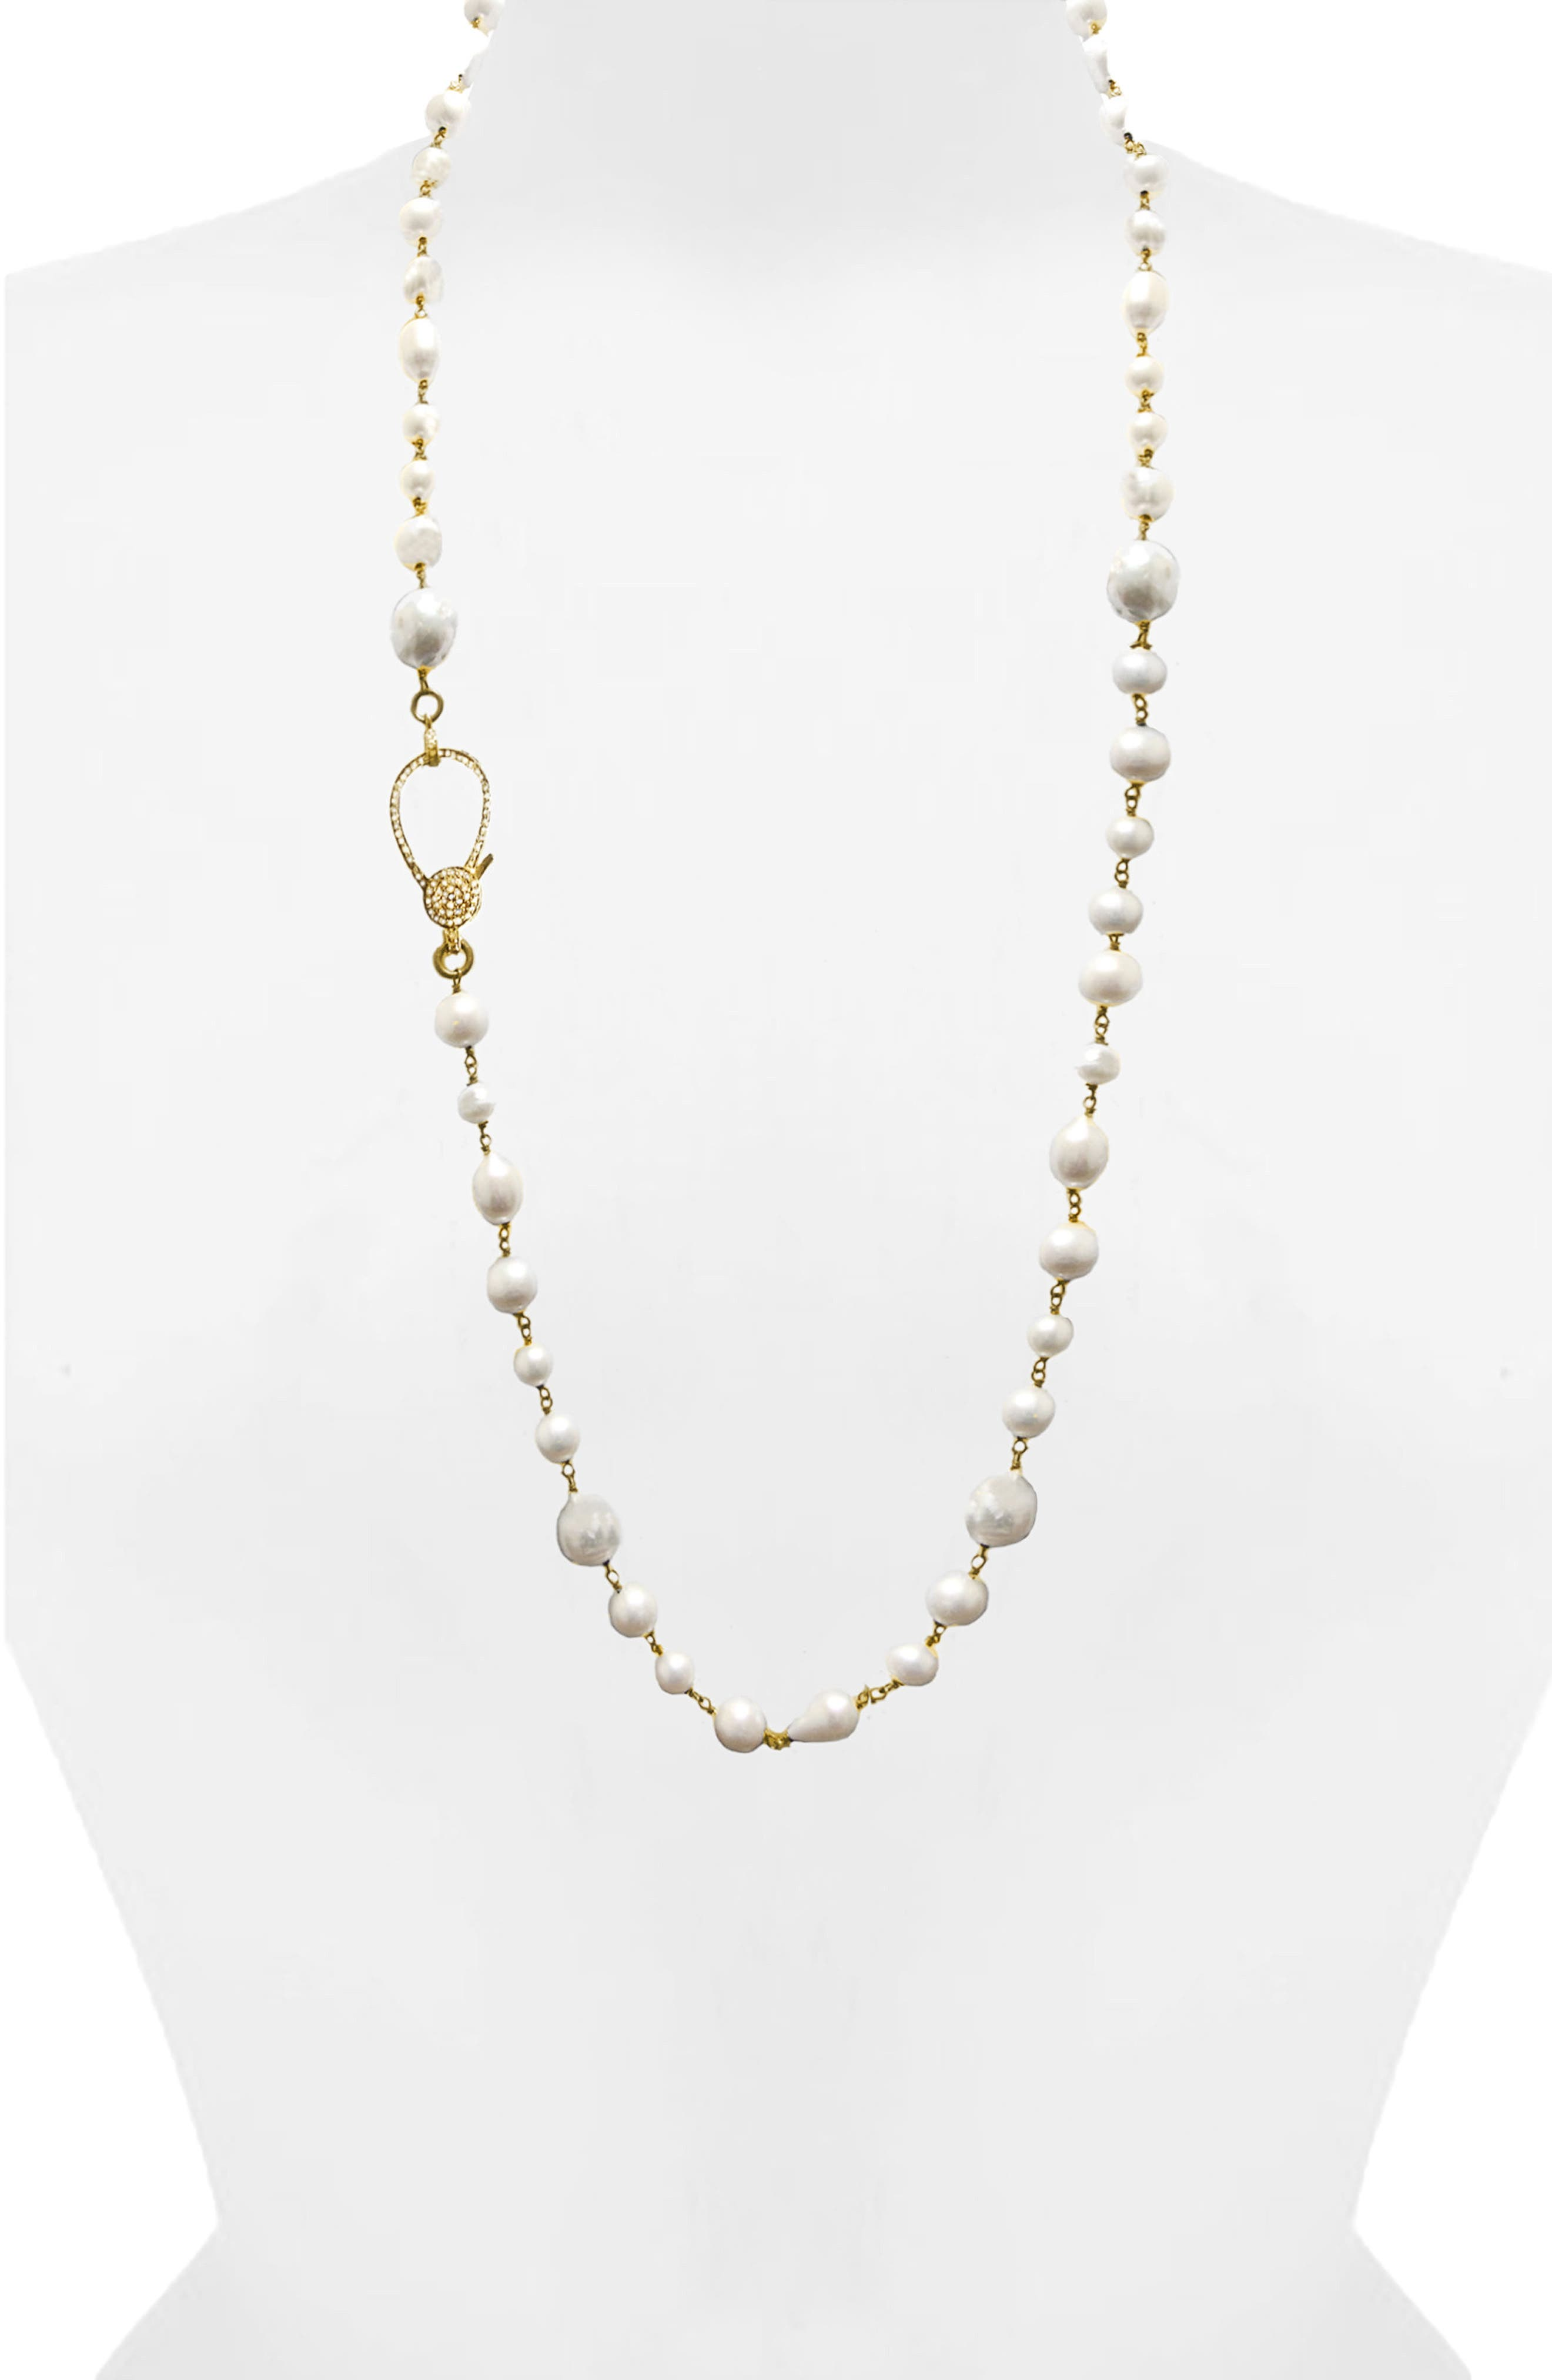 Jane Basch Long Pearl & Diamond Necklace,                             Main thumbnail 1, color,                             Pearl/ Yellow Gold